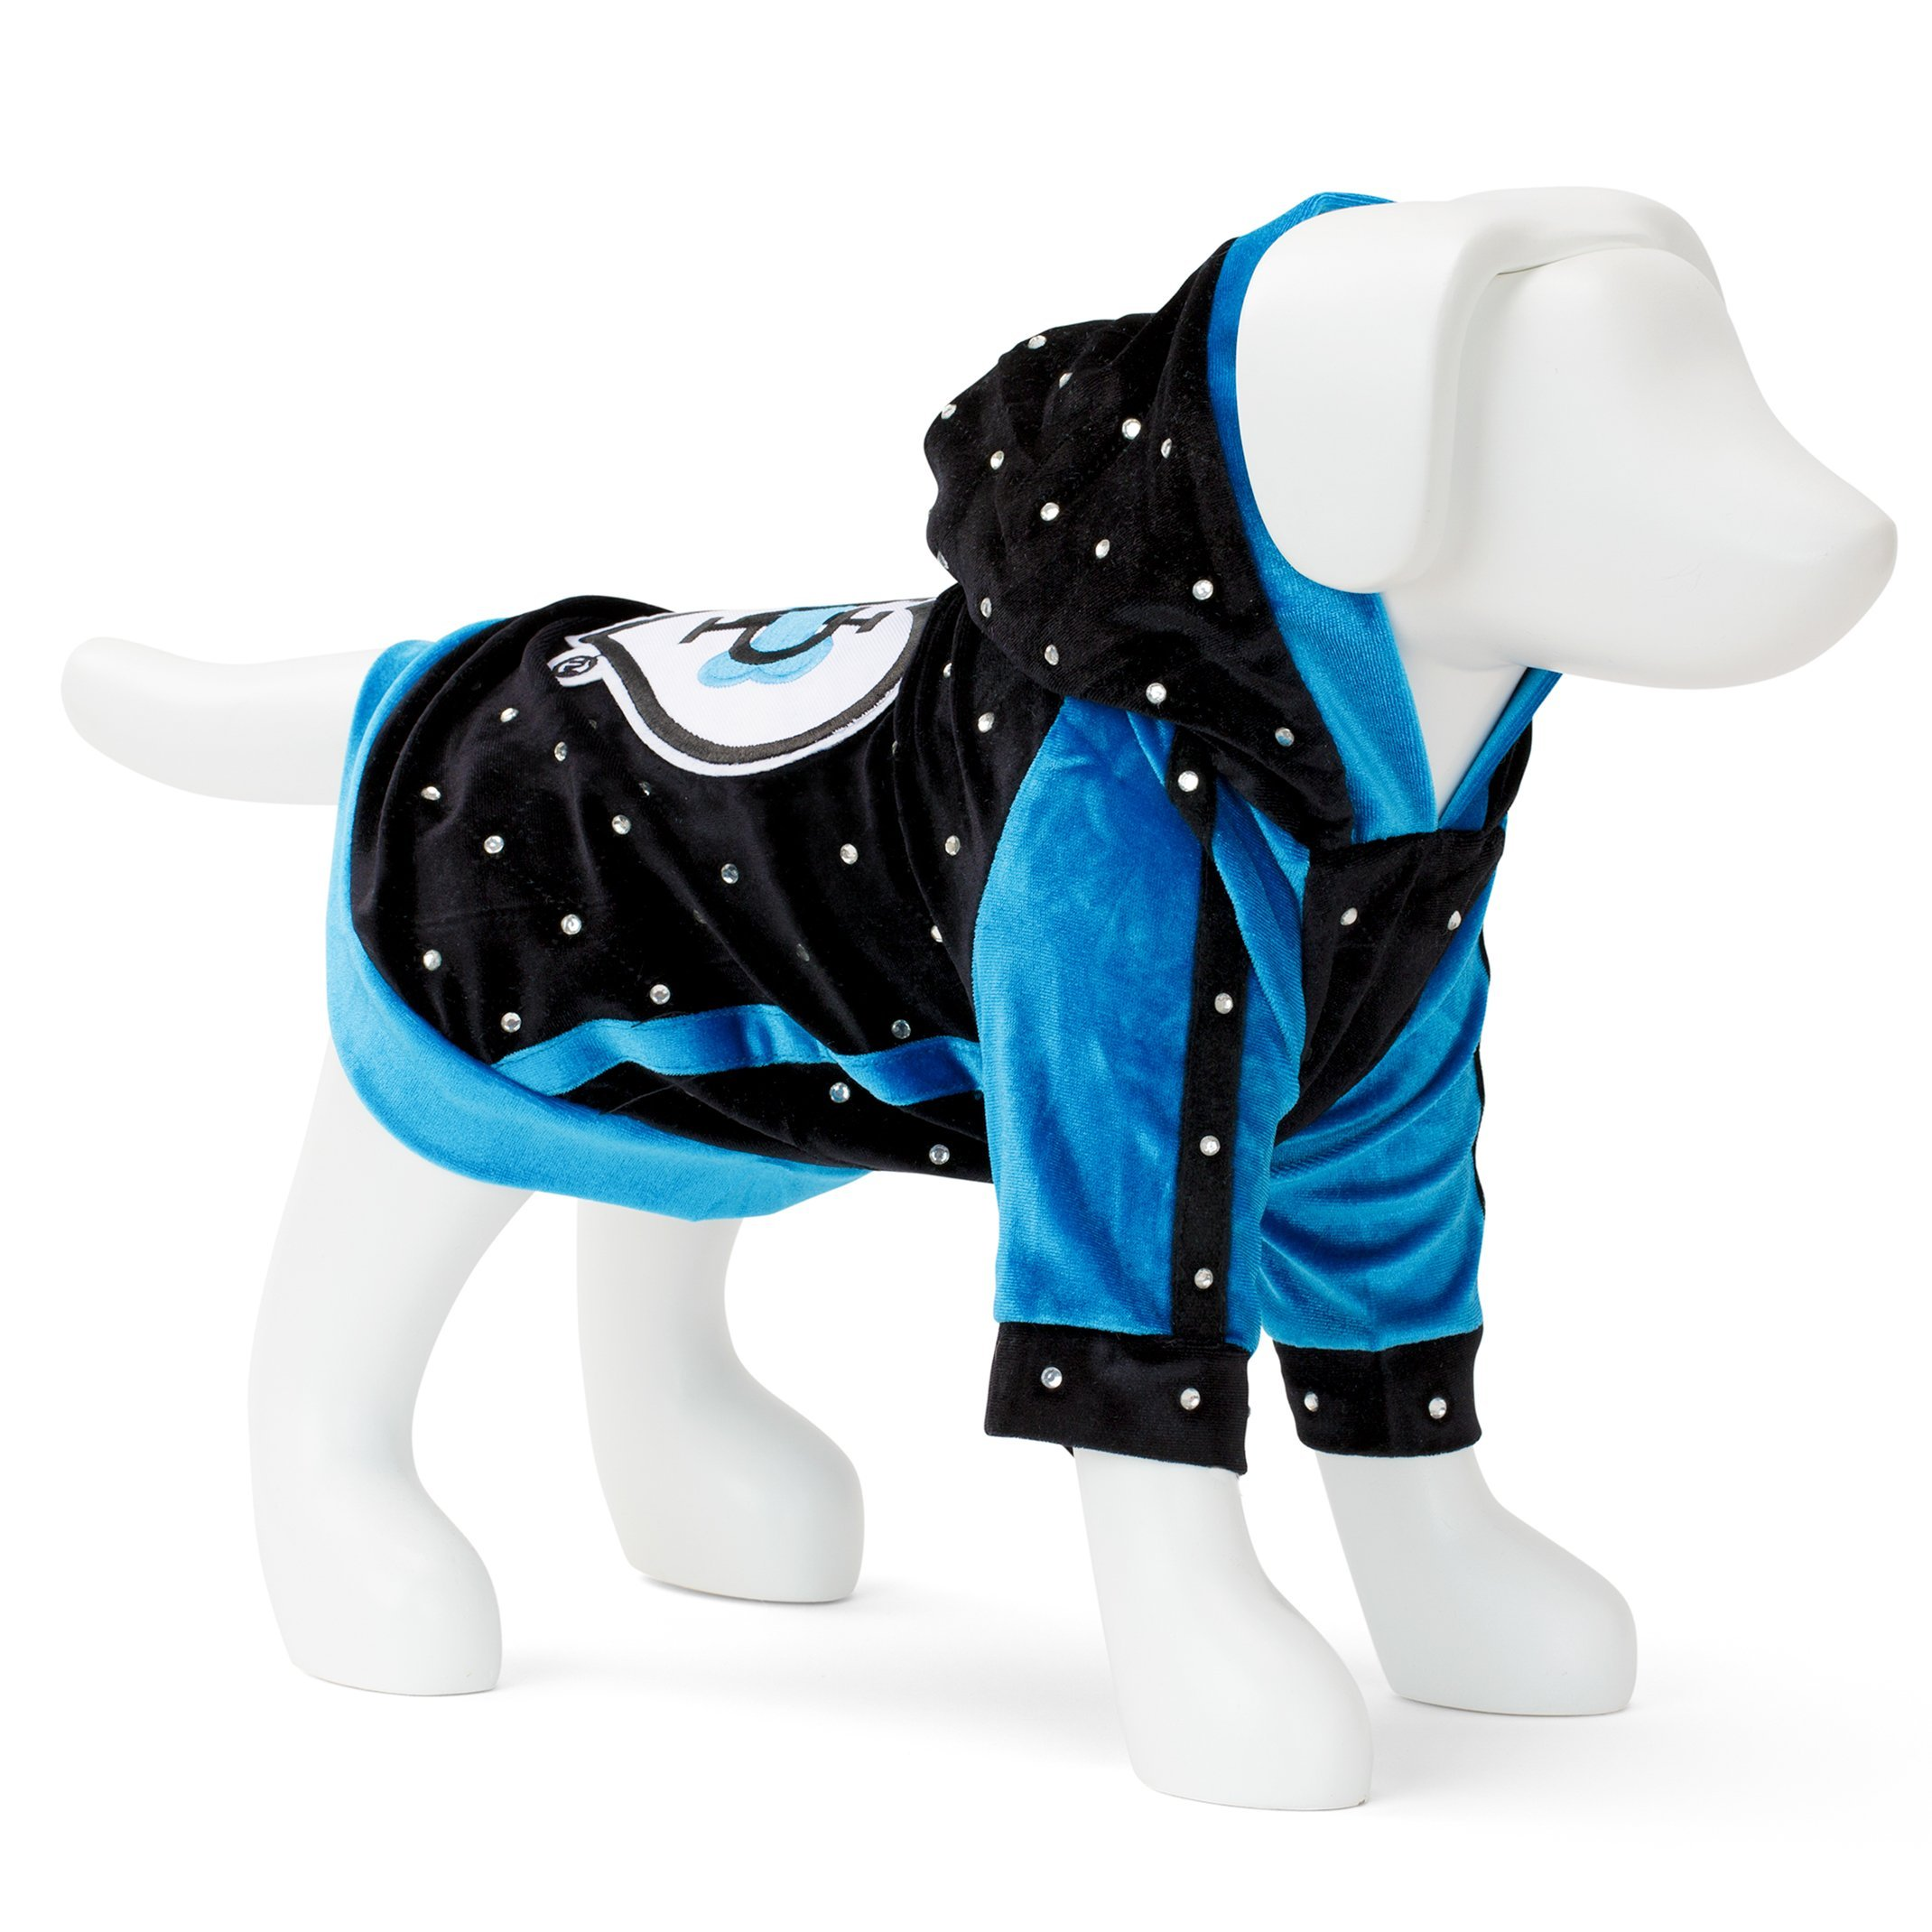 F&R FOR VP PETS HOODIE WITH HEART PATCH - BLACK/BLUE - MEDIU